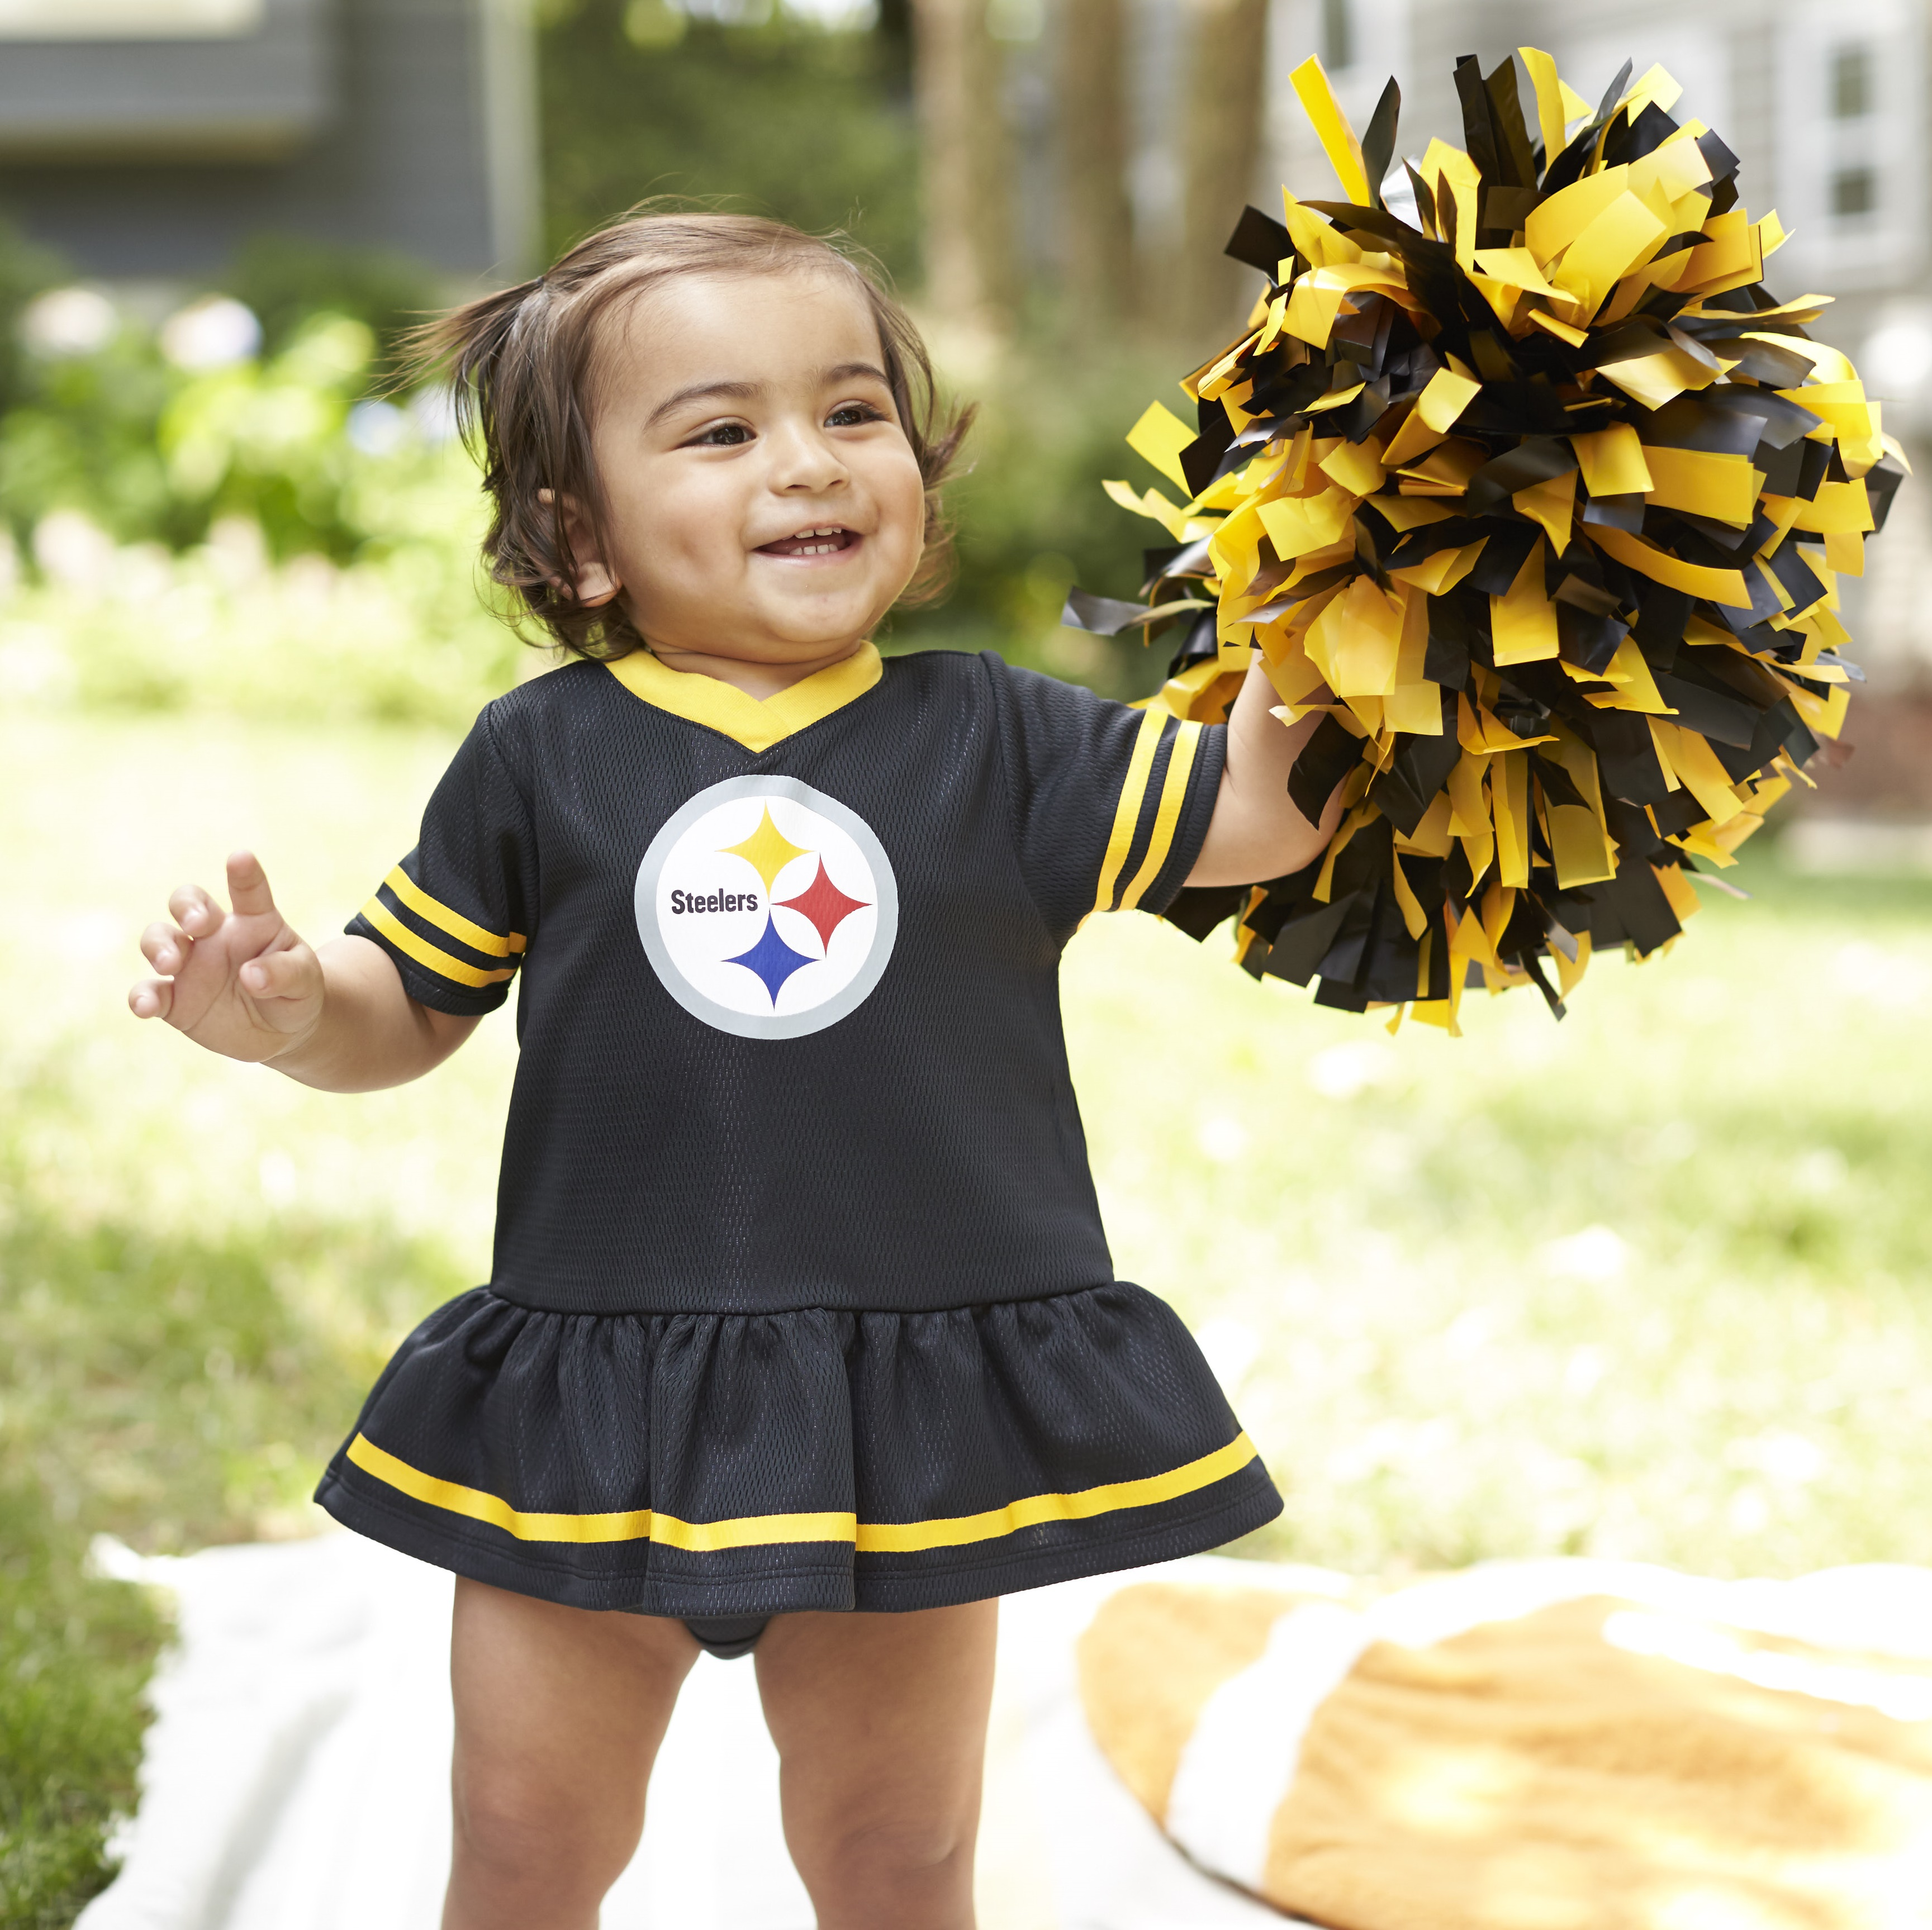 steelers-nfl-infant-dazzle-dress-diaper-cover-toddler